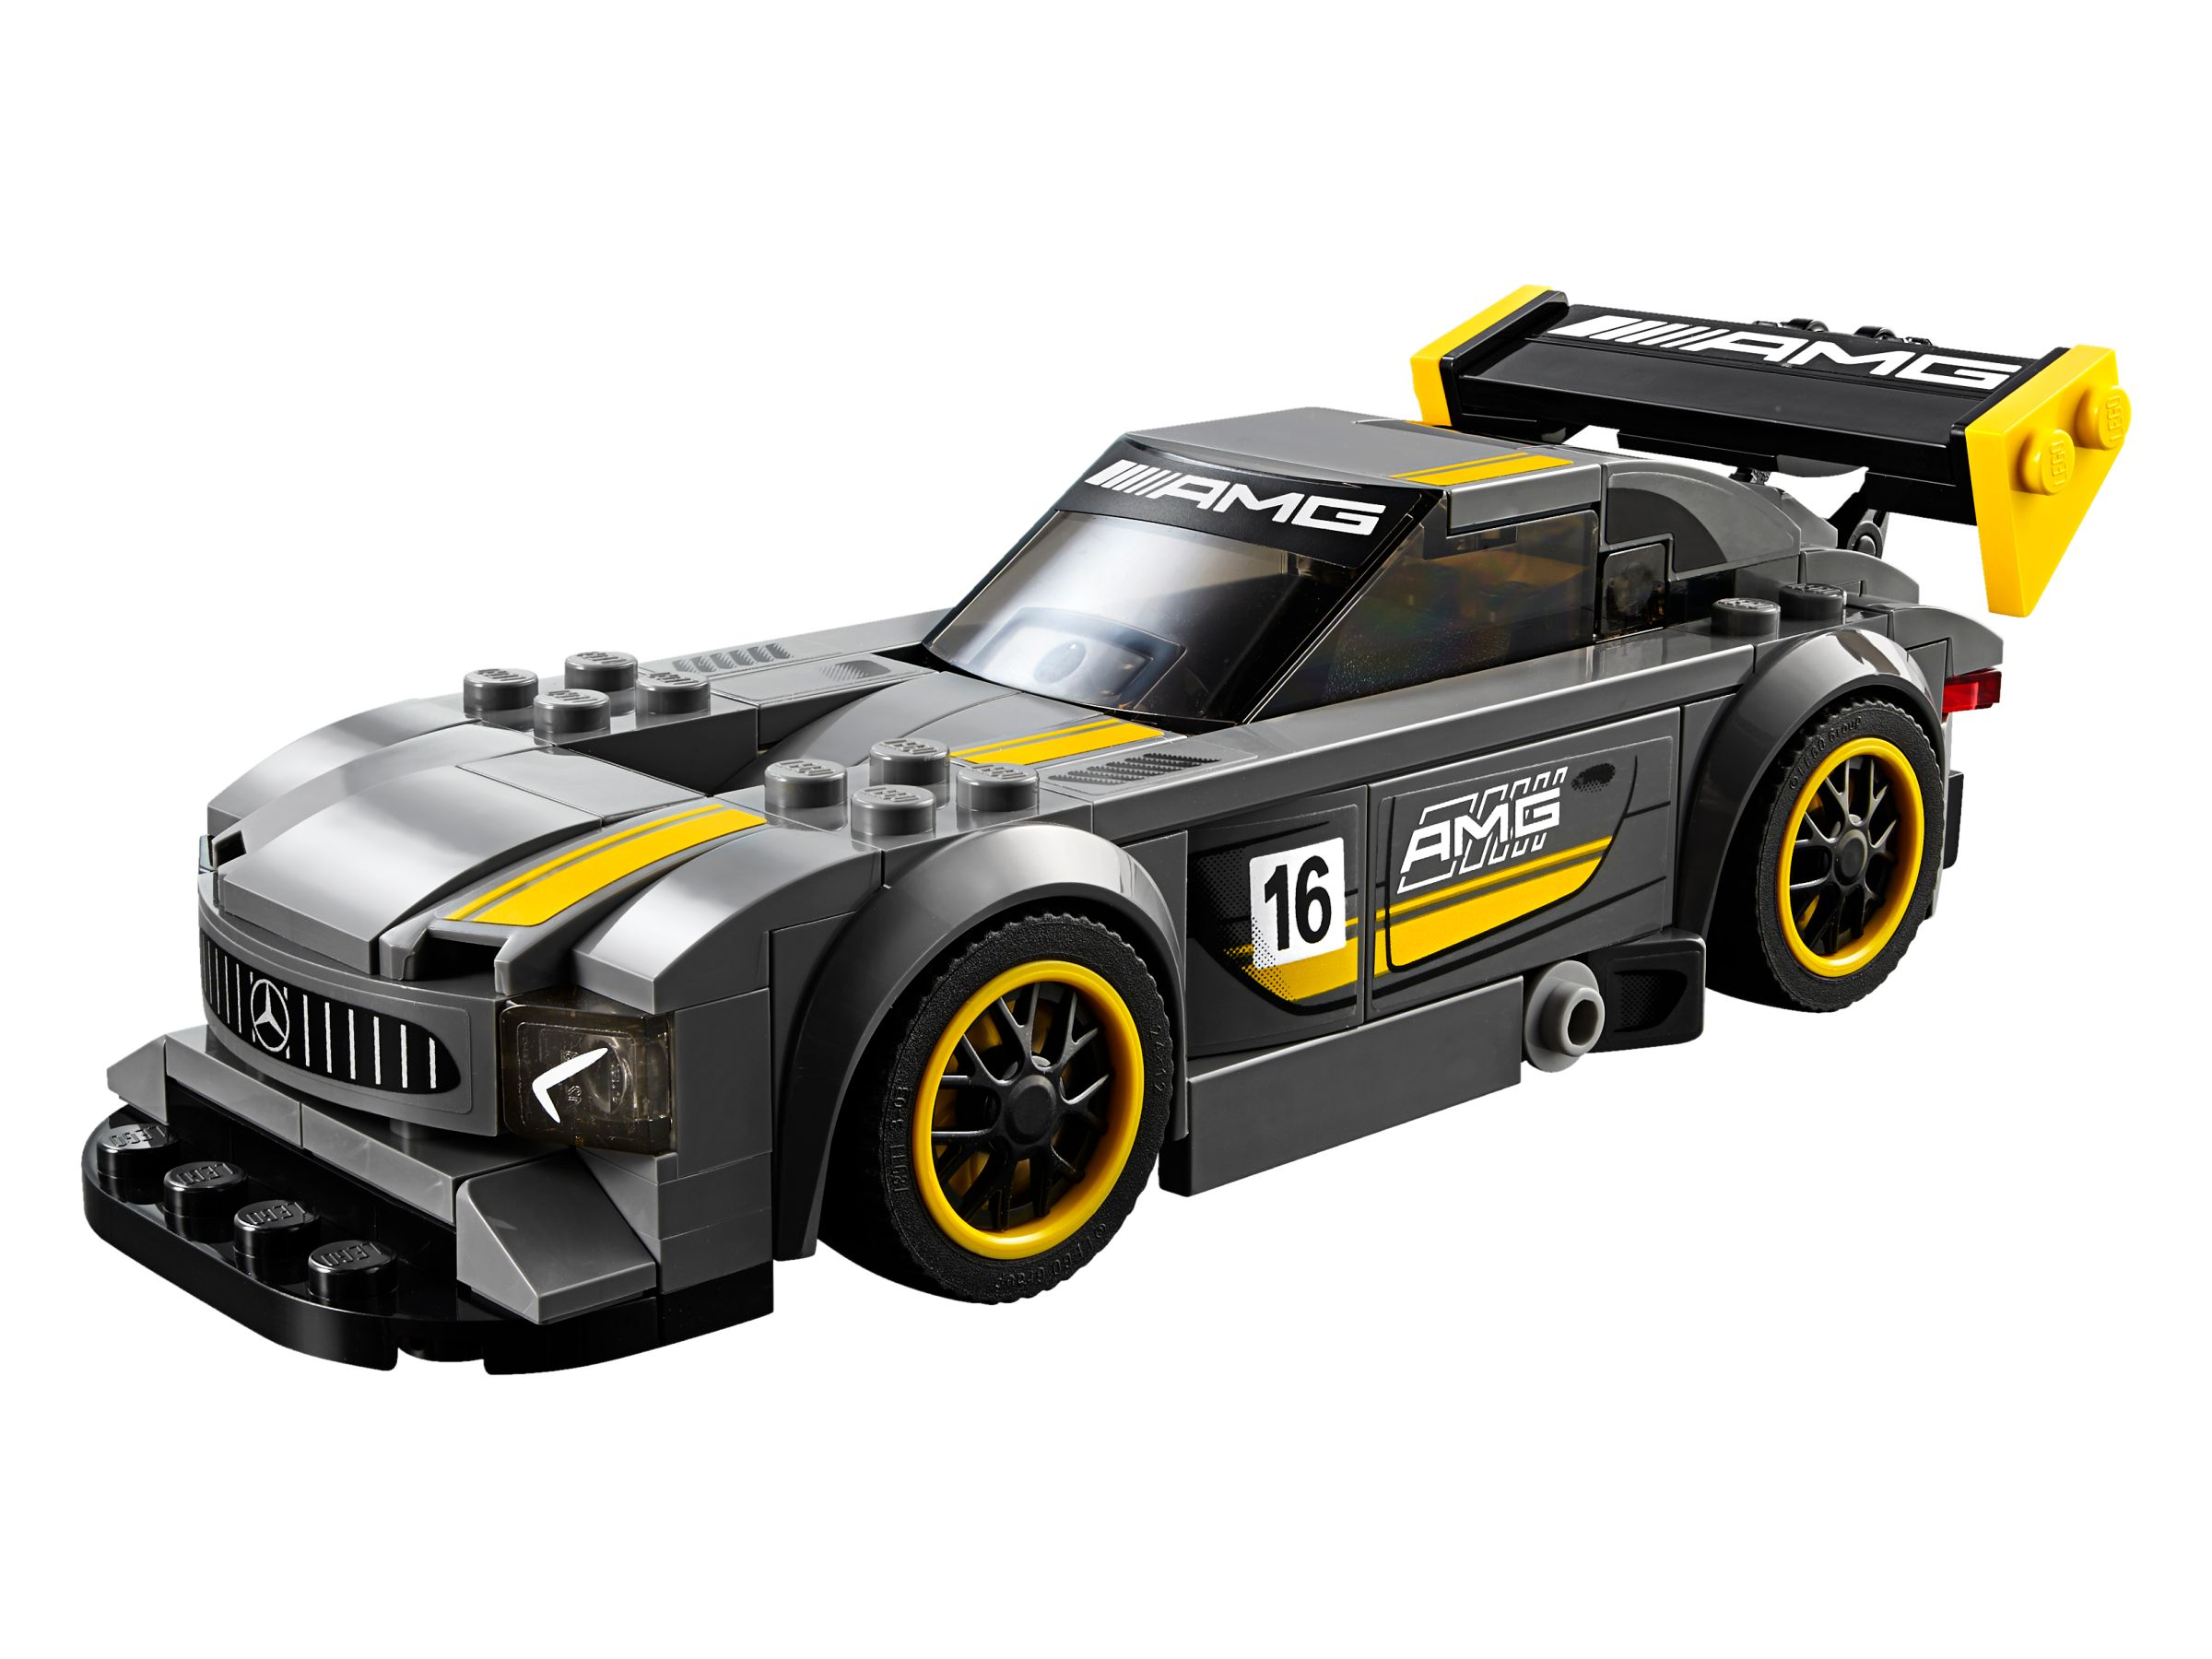 lego speed champions 75877 mercedes amg gt3 brickmerge. Black Bedroom Furniture Sets. Home Design Ideas